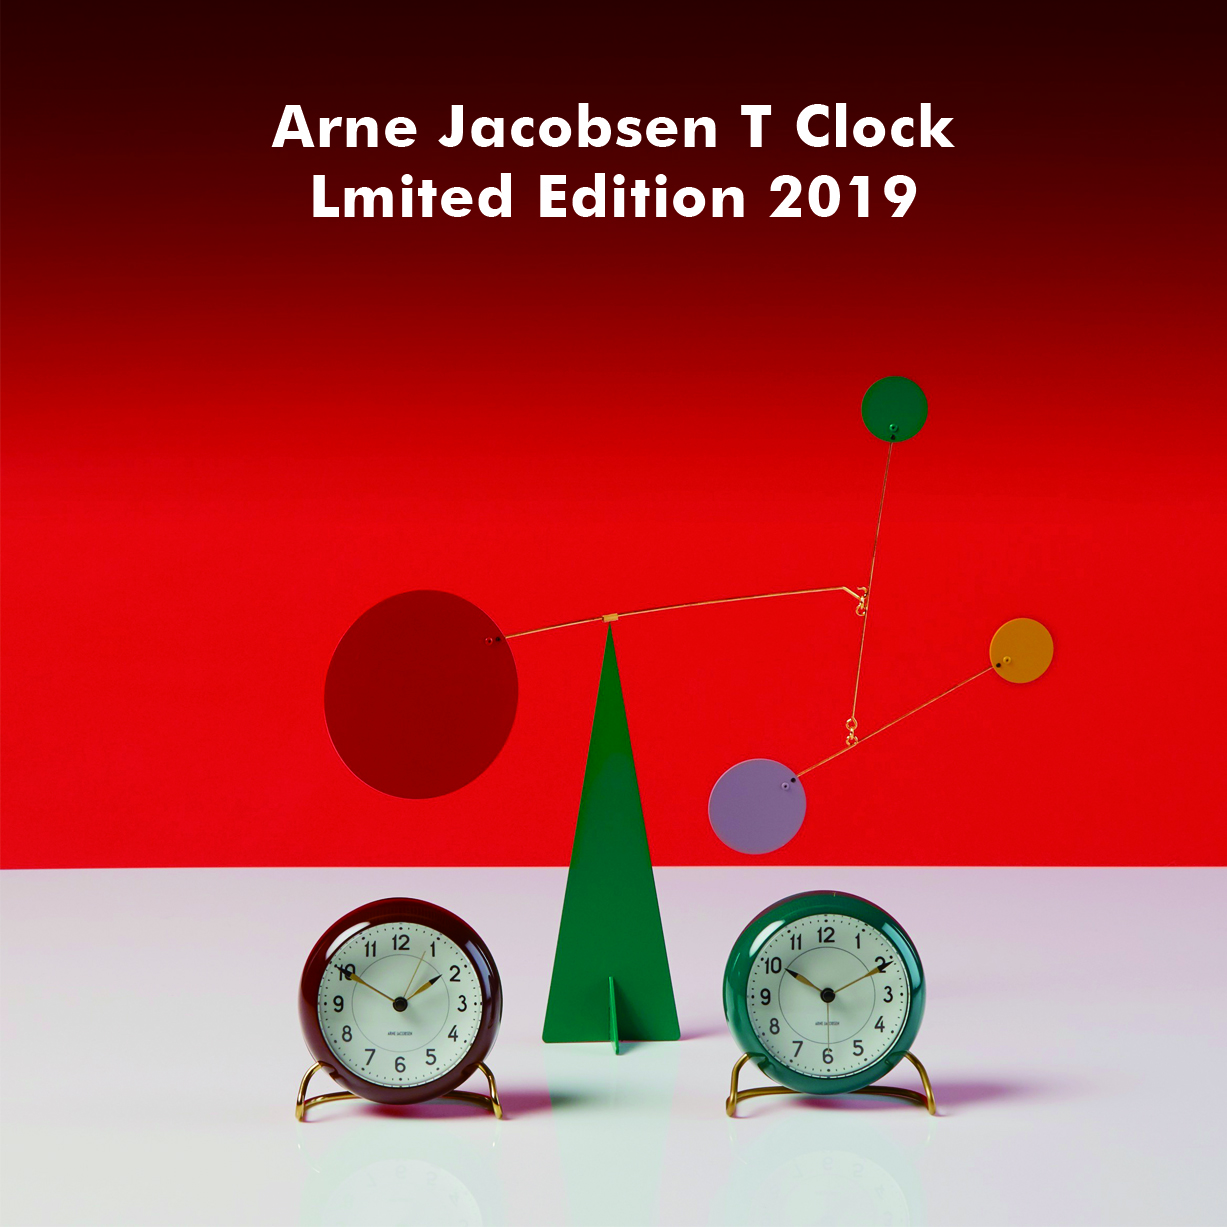 ARNE JACOBSEN TABLE CLOCK Limited Edition 2019